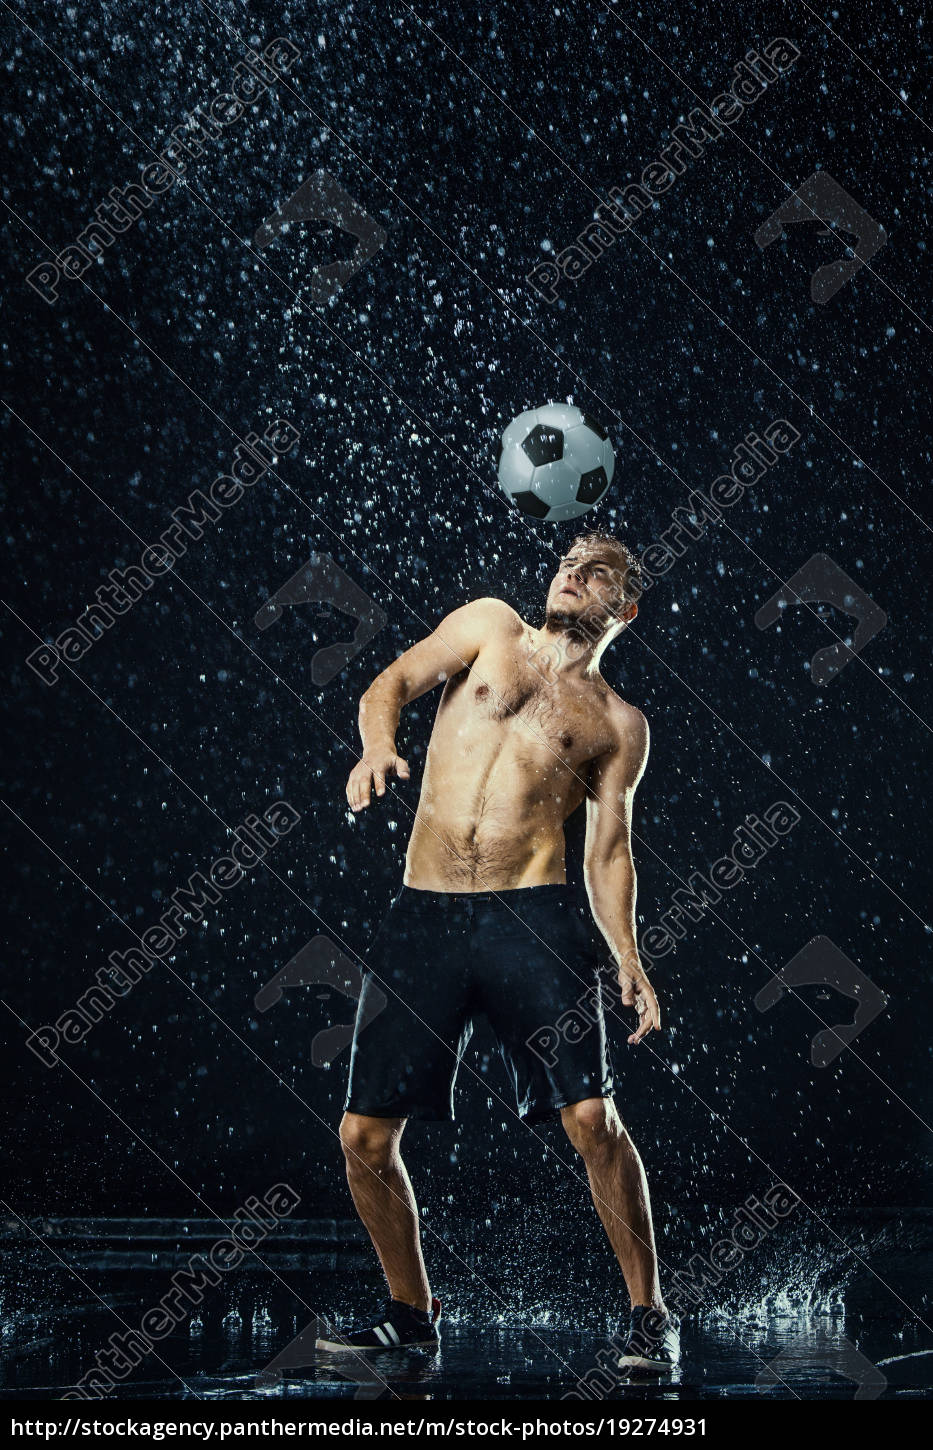 water, drops, around, football, player - 19274931